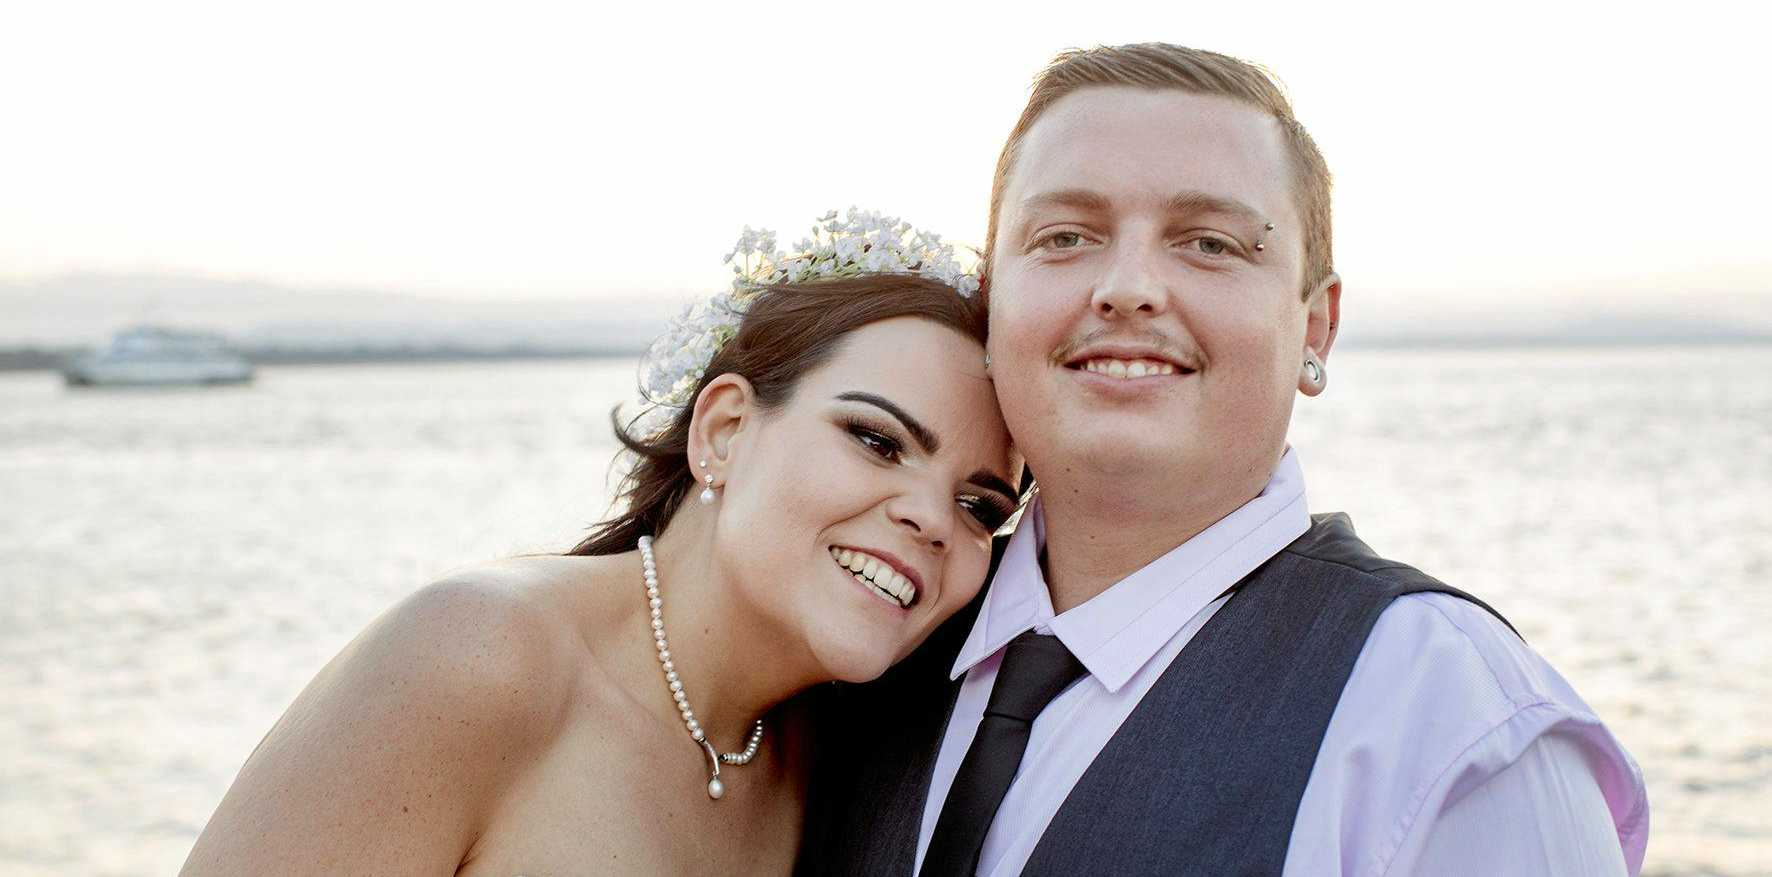 Bridie Immoos and Michael Ritchie wed at Agnes Water on September 24.